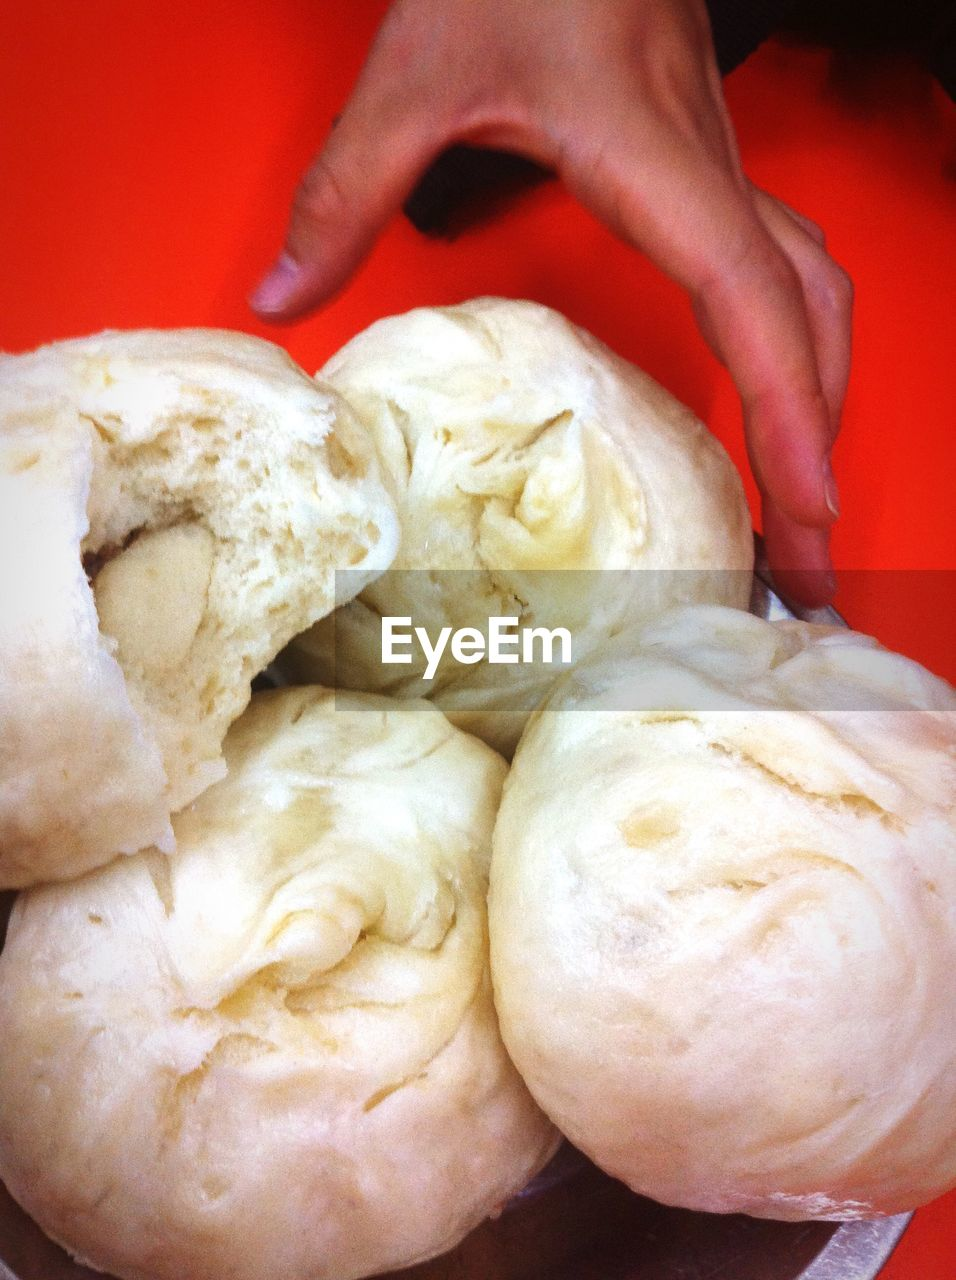 food and drink, human hand, food, human body part, one person, holding, real people, freshness, preparation, indoors, dough, close-up, men, healthy eating, dumpling, day, adult, people